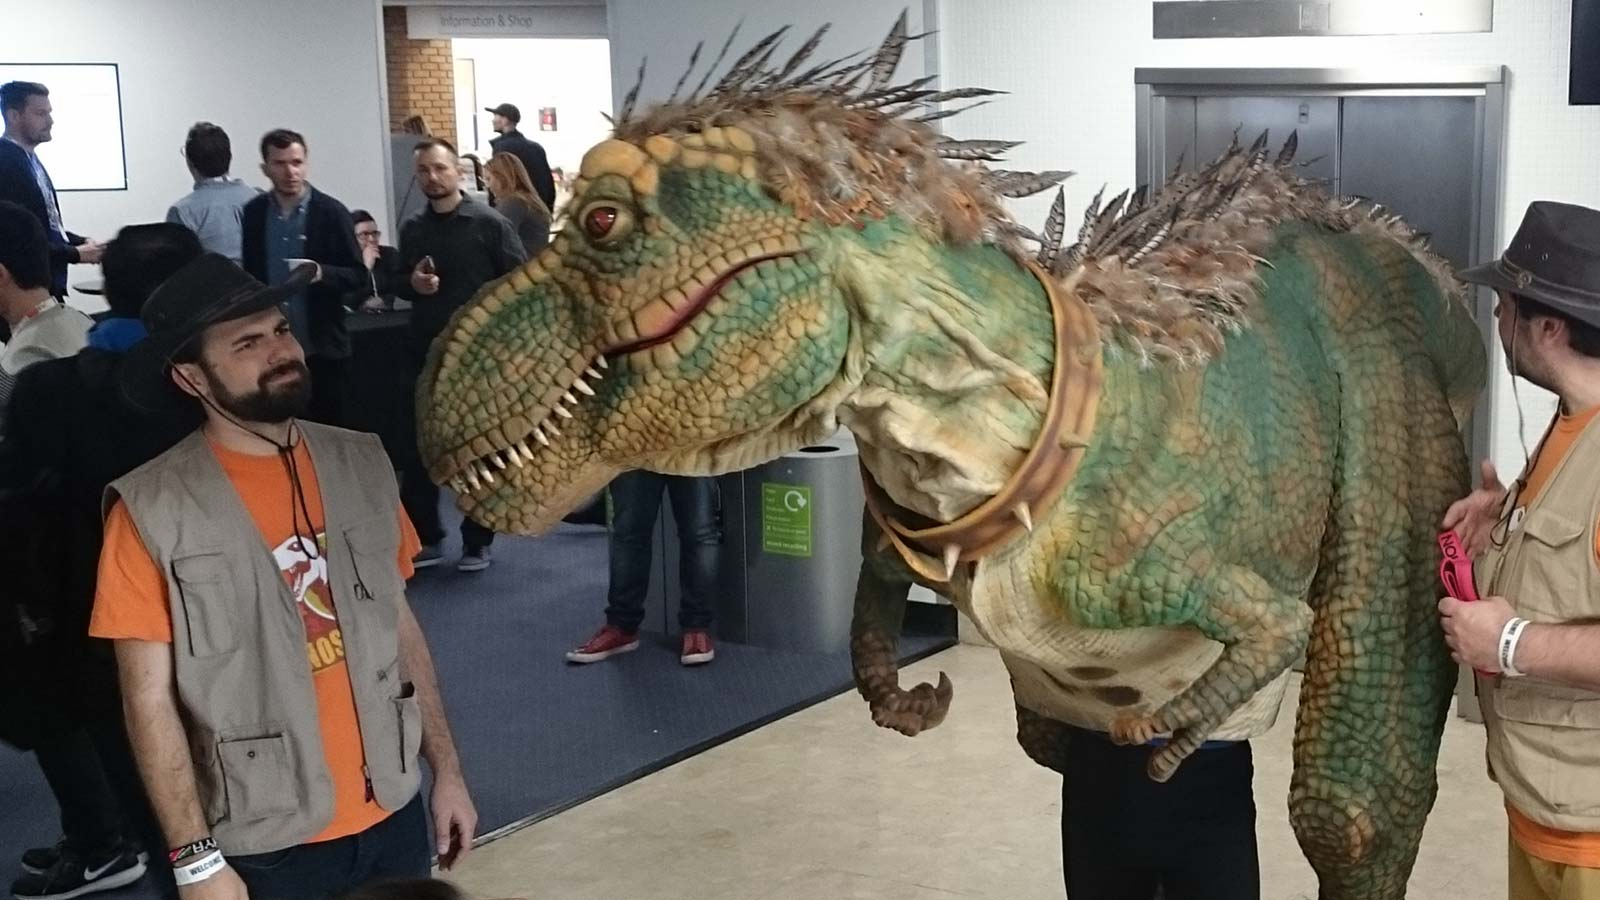 T-Rex dinosaur at #brightonSEO conference